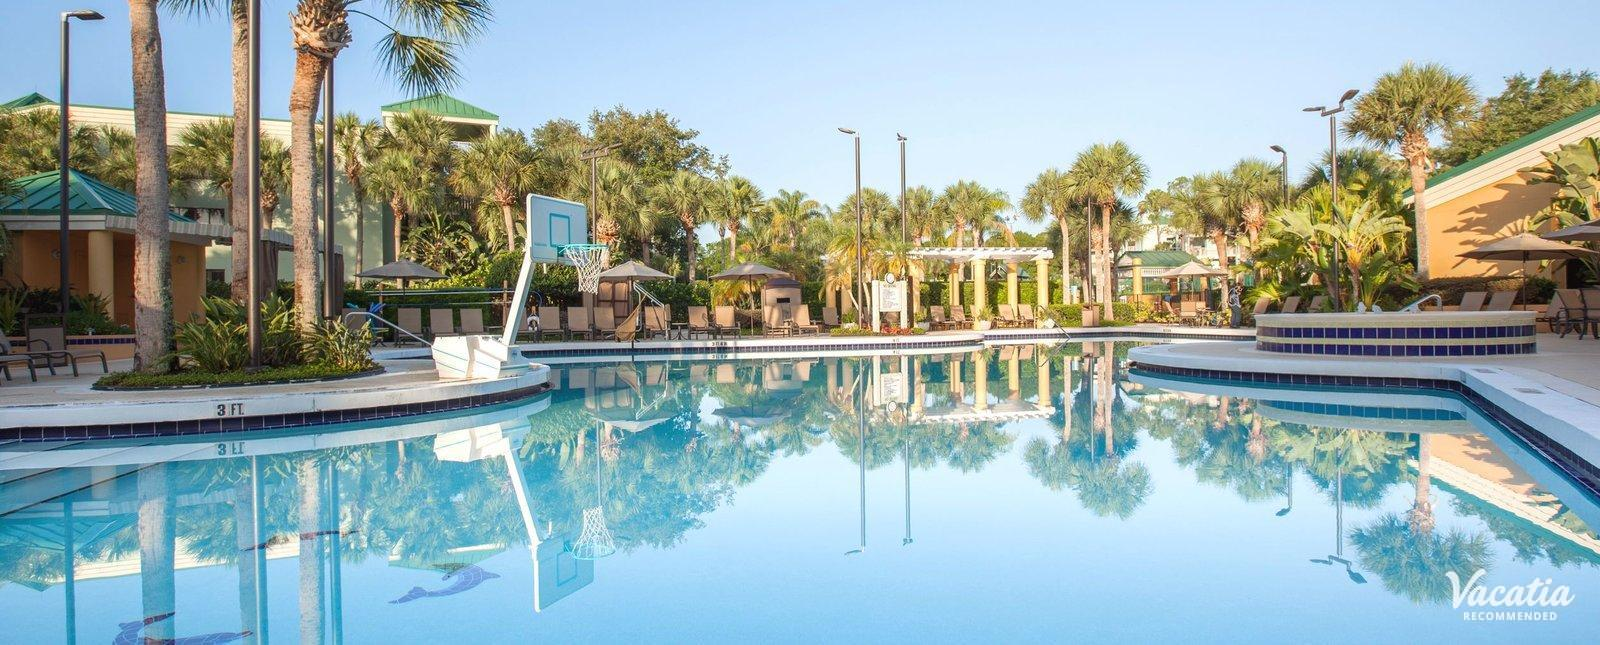 Marriott's Royal Palms family friendly pools